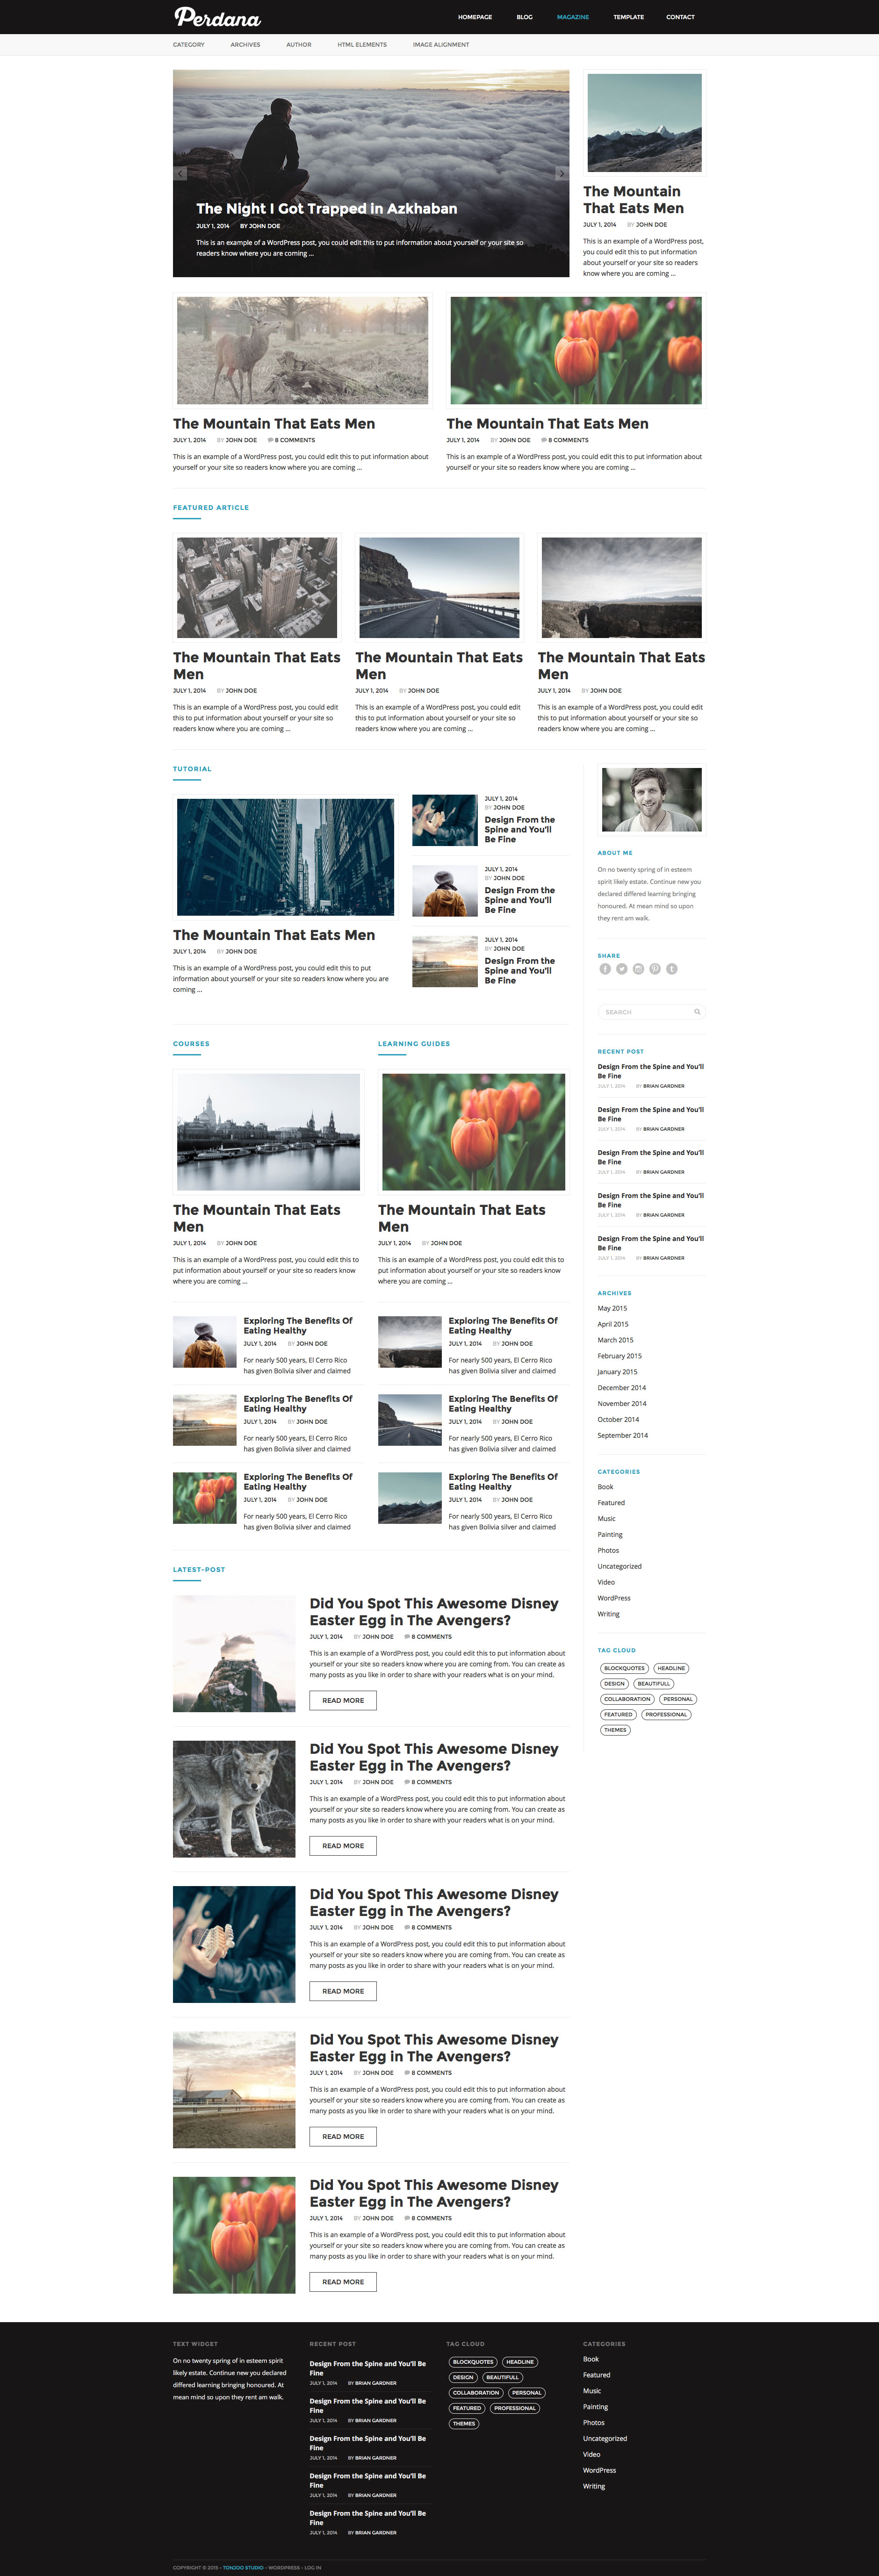 Perdana is a free Magazine/Blog HTML5 Template with classic design and modern look. It's well suited for magazine, news, blog or editorial site. This template is fully responsive, based on the popular Bootstrap framework and comes with 5 different skin colors, 2 different layout options and 10 different background patterns.